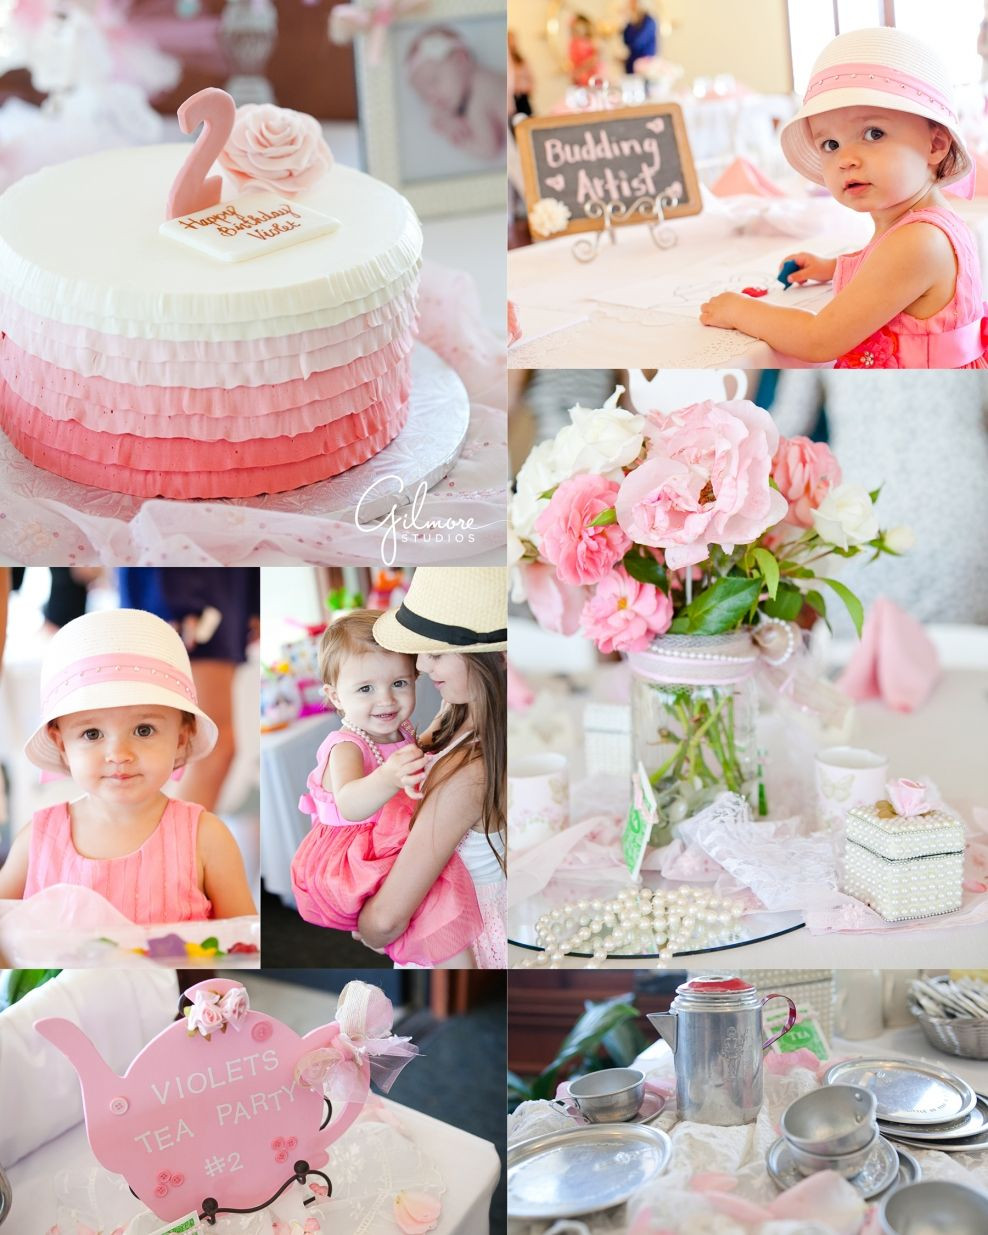 2Nd Birthday Decorations For Girl  2nd Birthday Tea Party in Newport Beach Girl Birthday